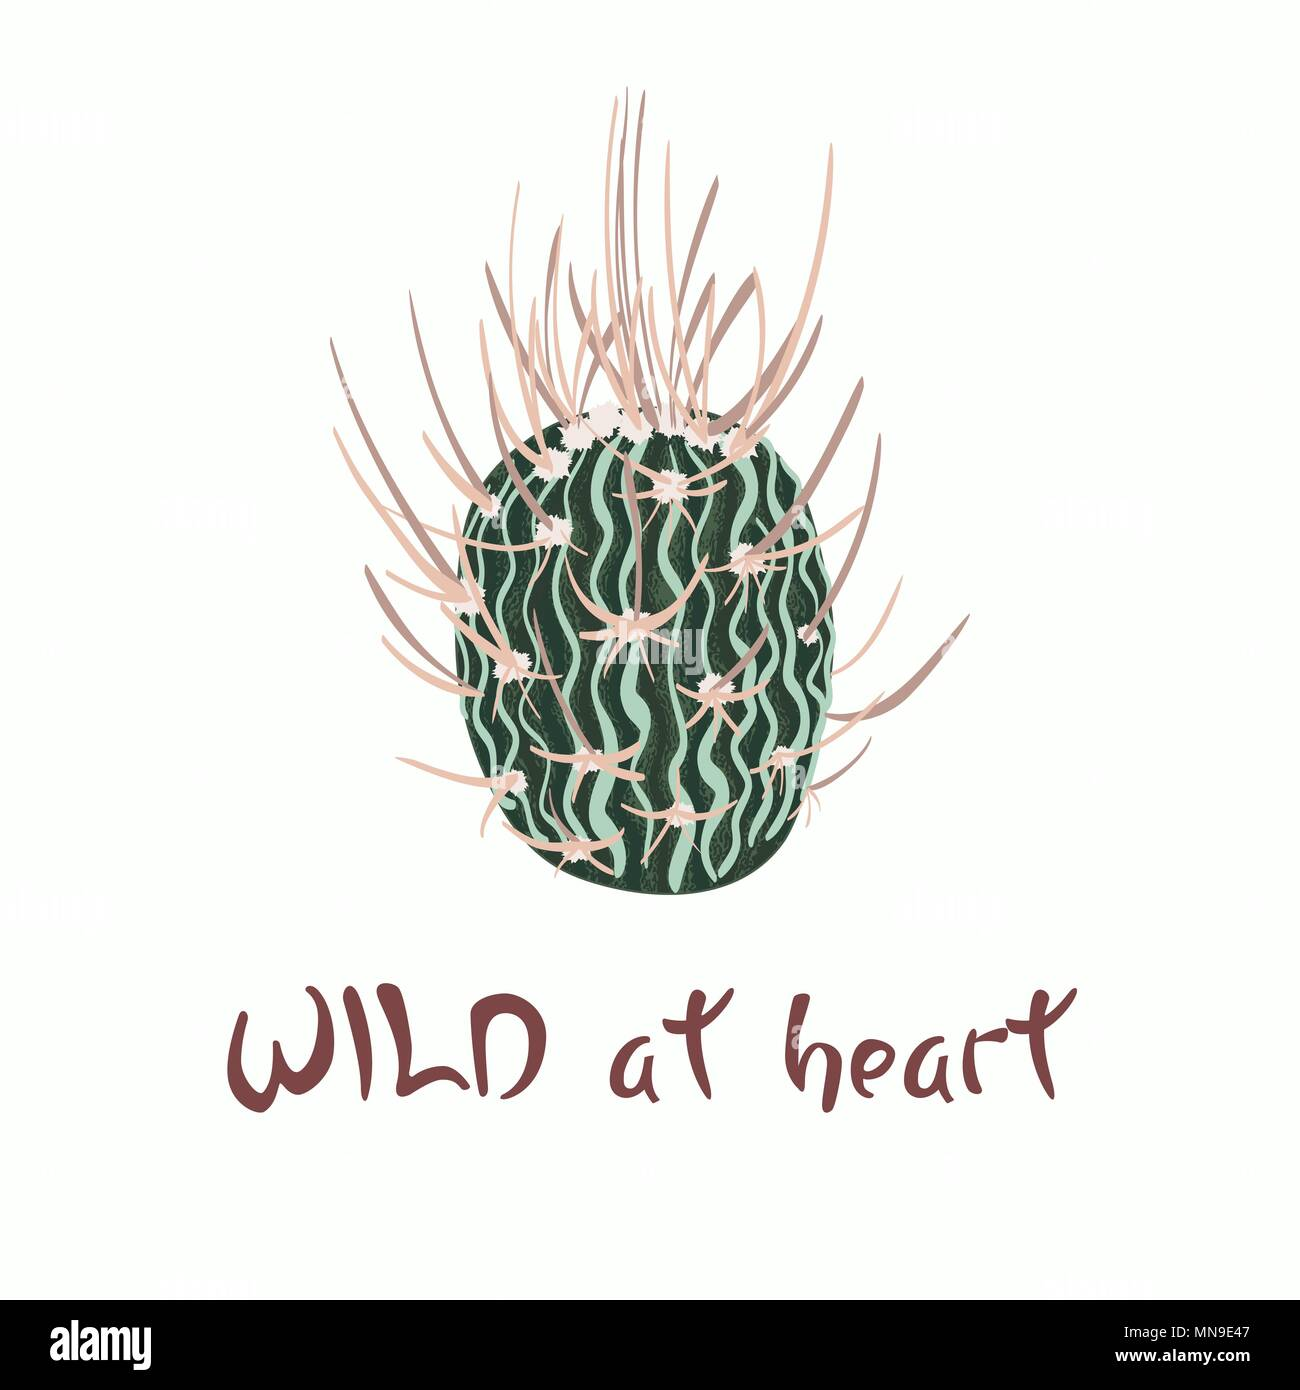 Hand written lettering Message slogan Wild at heart with cactus image - Stock Image